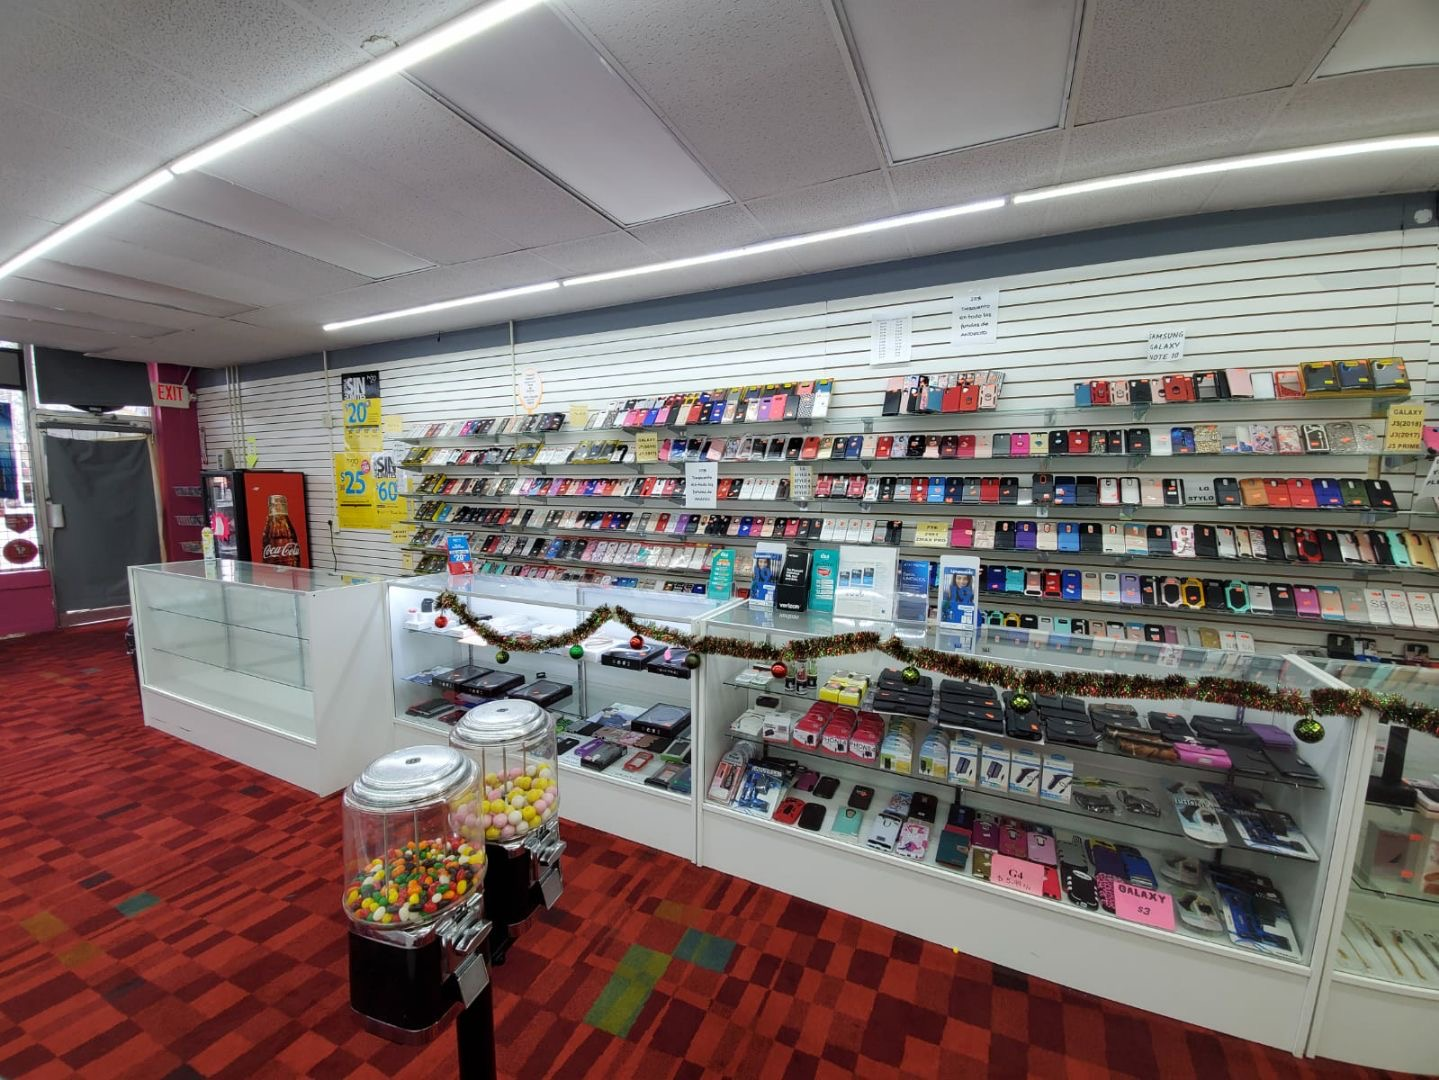 (UNDER CONTRACT)! Low Rent! Cell Phone Store for $30K!